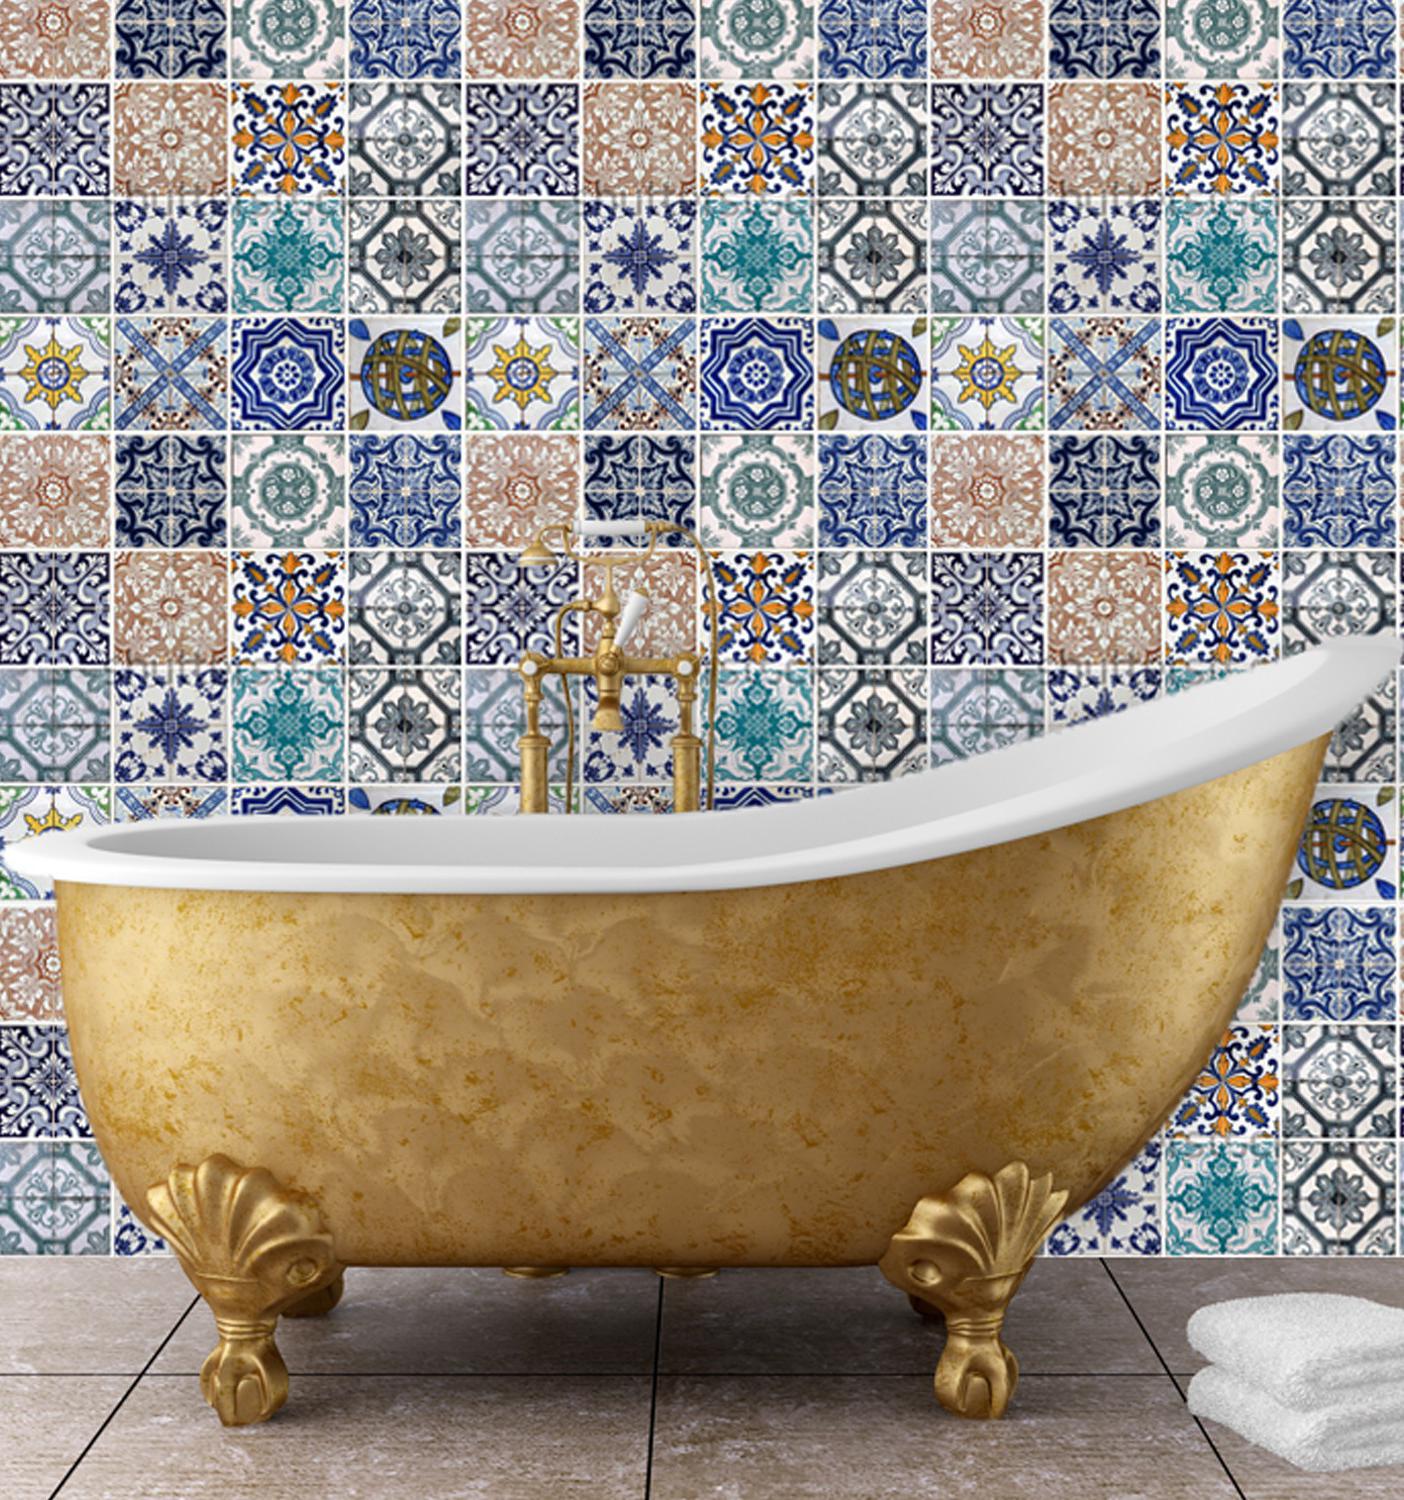 Mosaic tile wall mural Gold and shimmer Pinterest